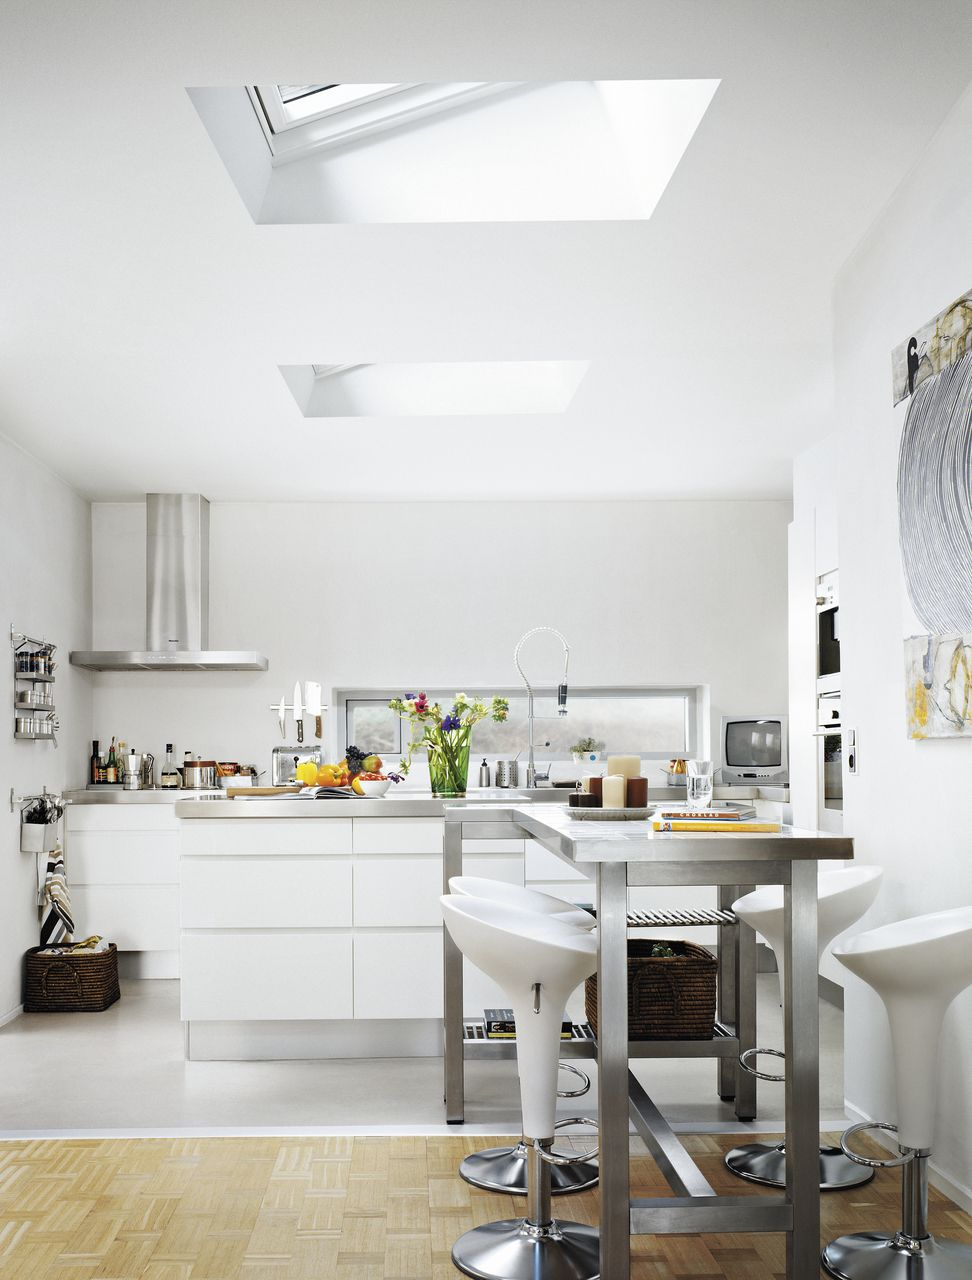 Flat Roof Kitchens : Pin by wendy drummond on loft conversion ideas in